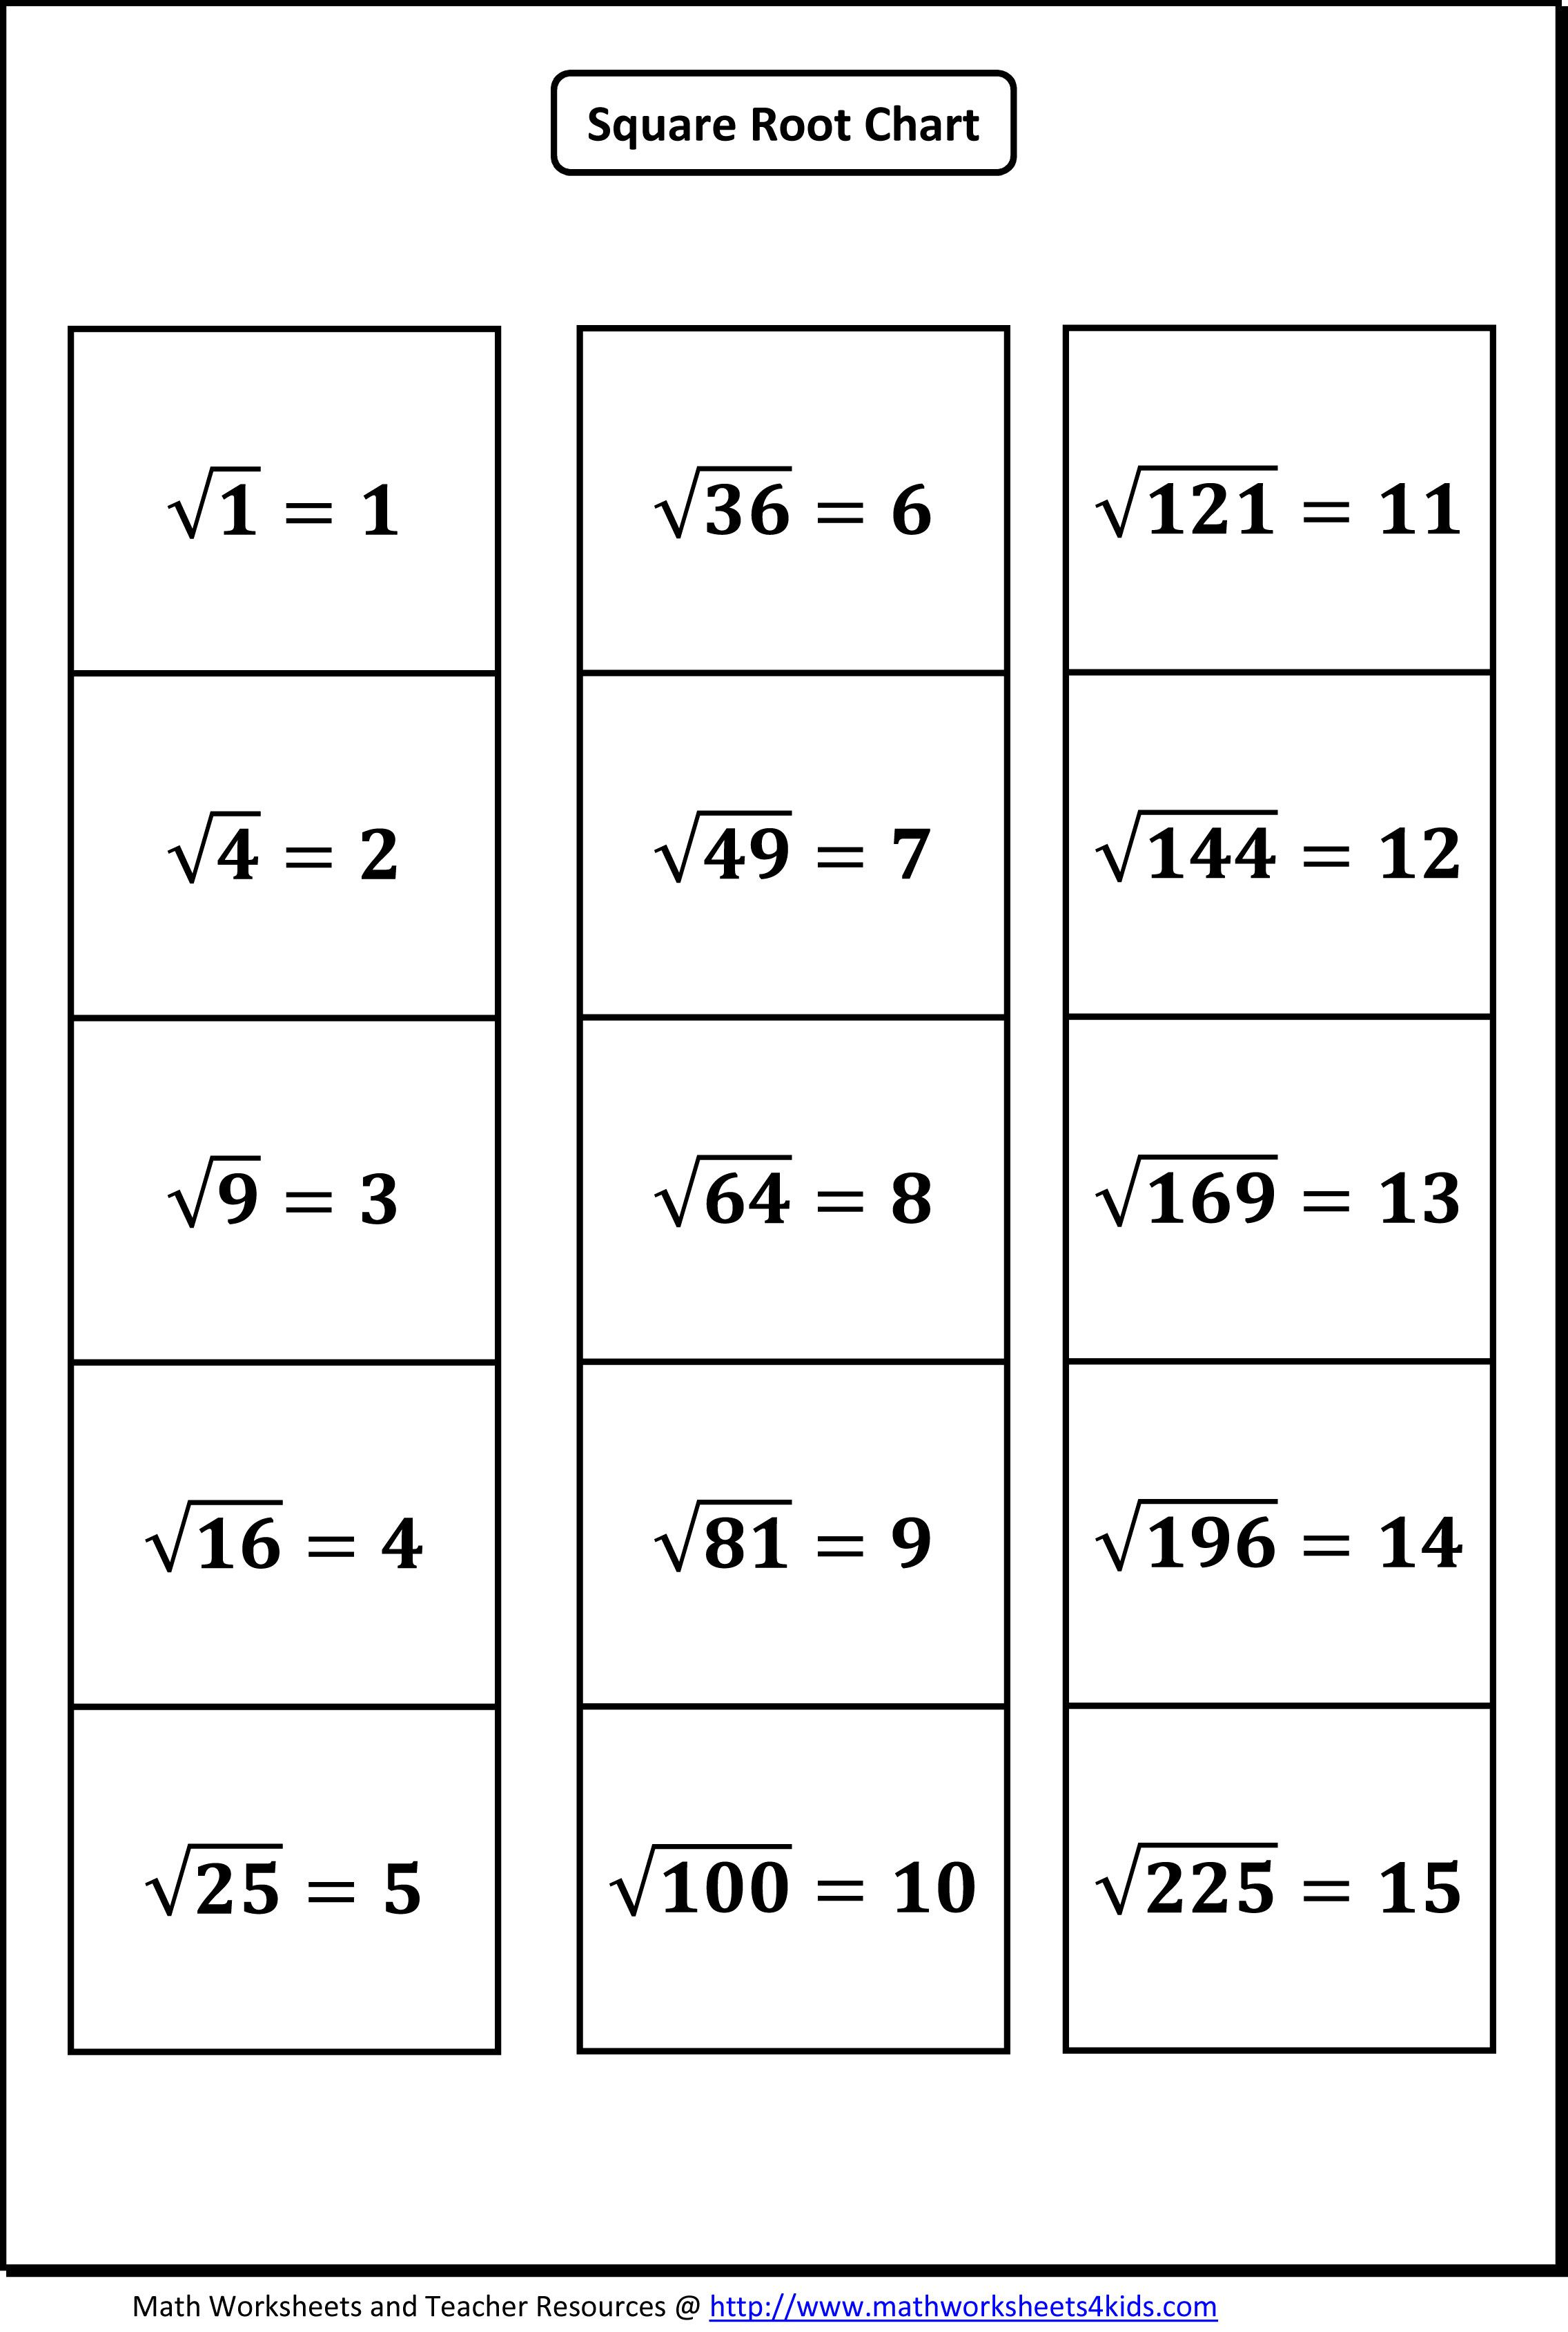 square root worksheets find the square root of whole numbers fractions and decimals square. Black Bedroom Furniture Sets. Home Design Ideas